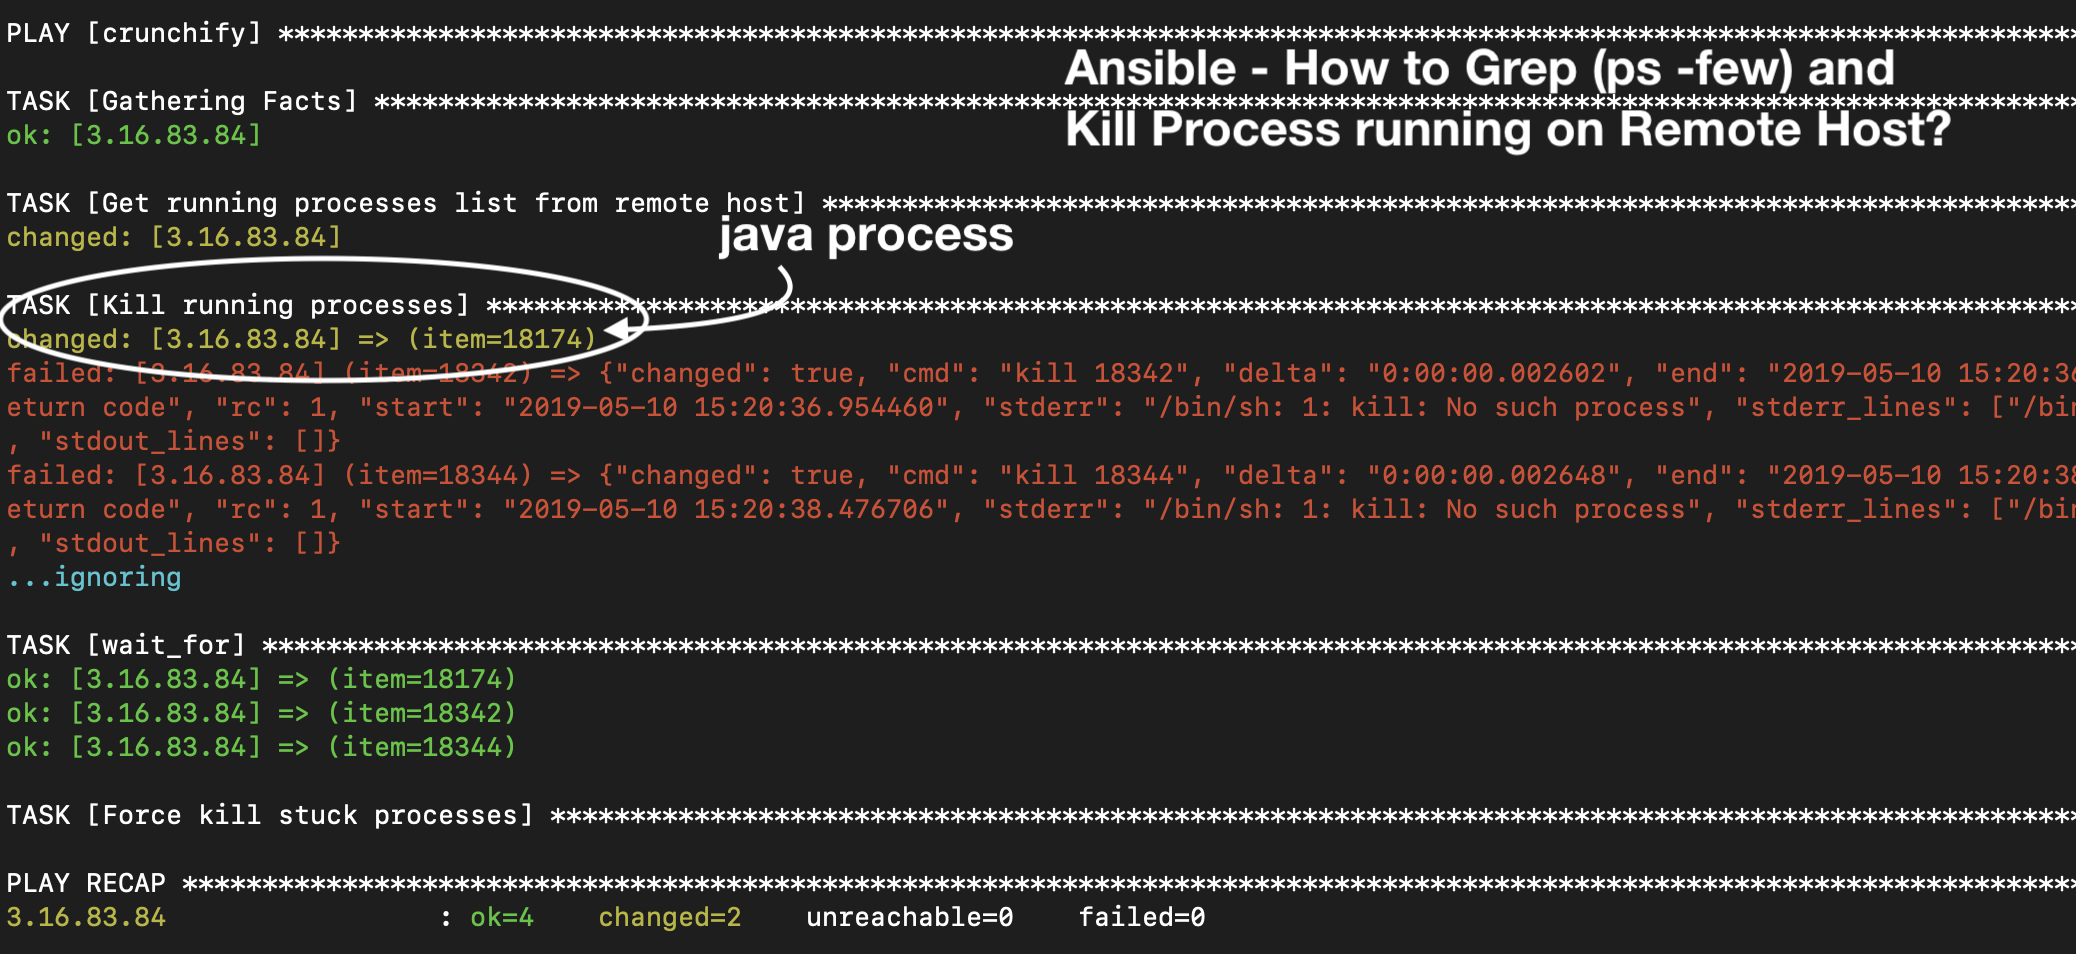 Ansible - How to Grep (ps -few) and Kill Process running on Remote Host?